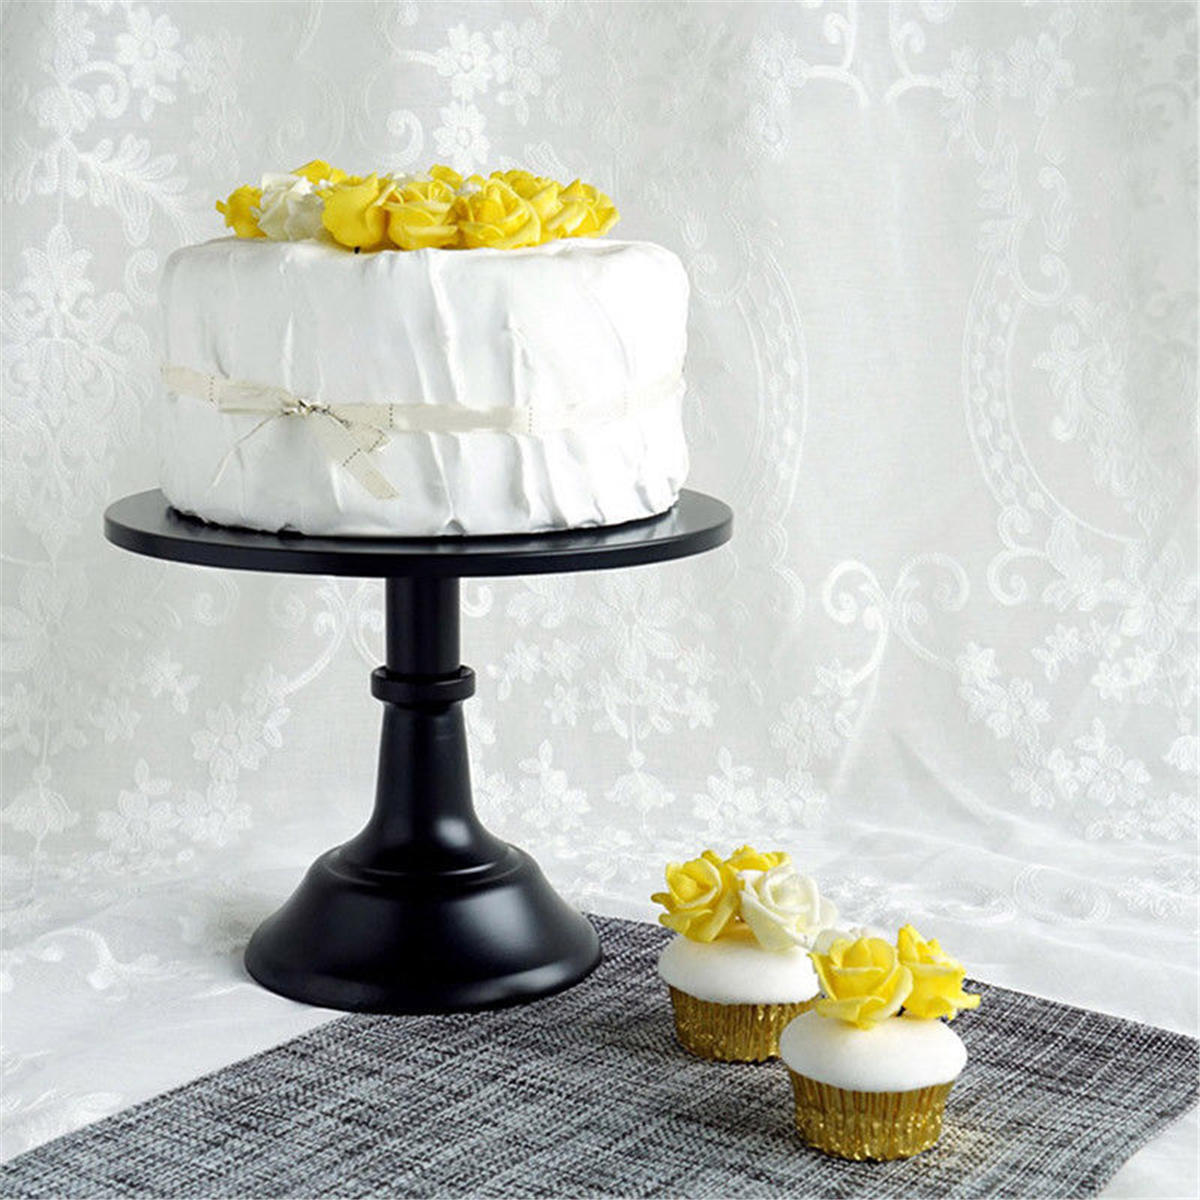 10 Inch Iron Round Cake Stand Pedestal Dessert Holder Display Wedding Party Decorations Cod